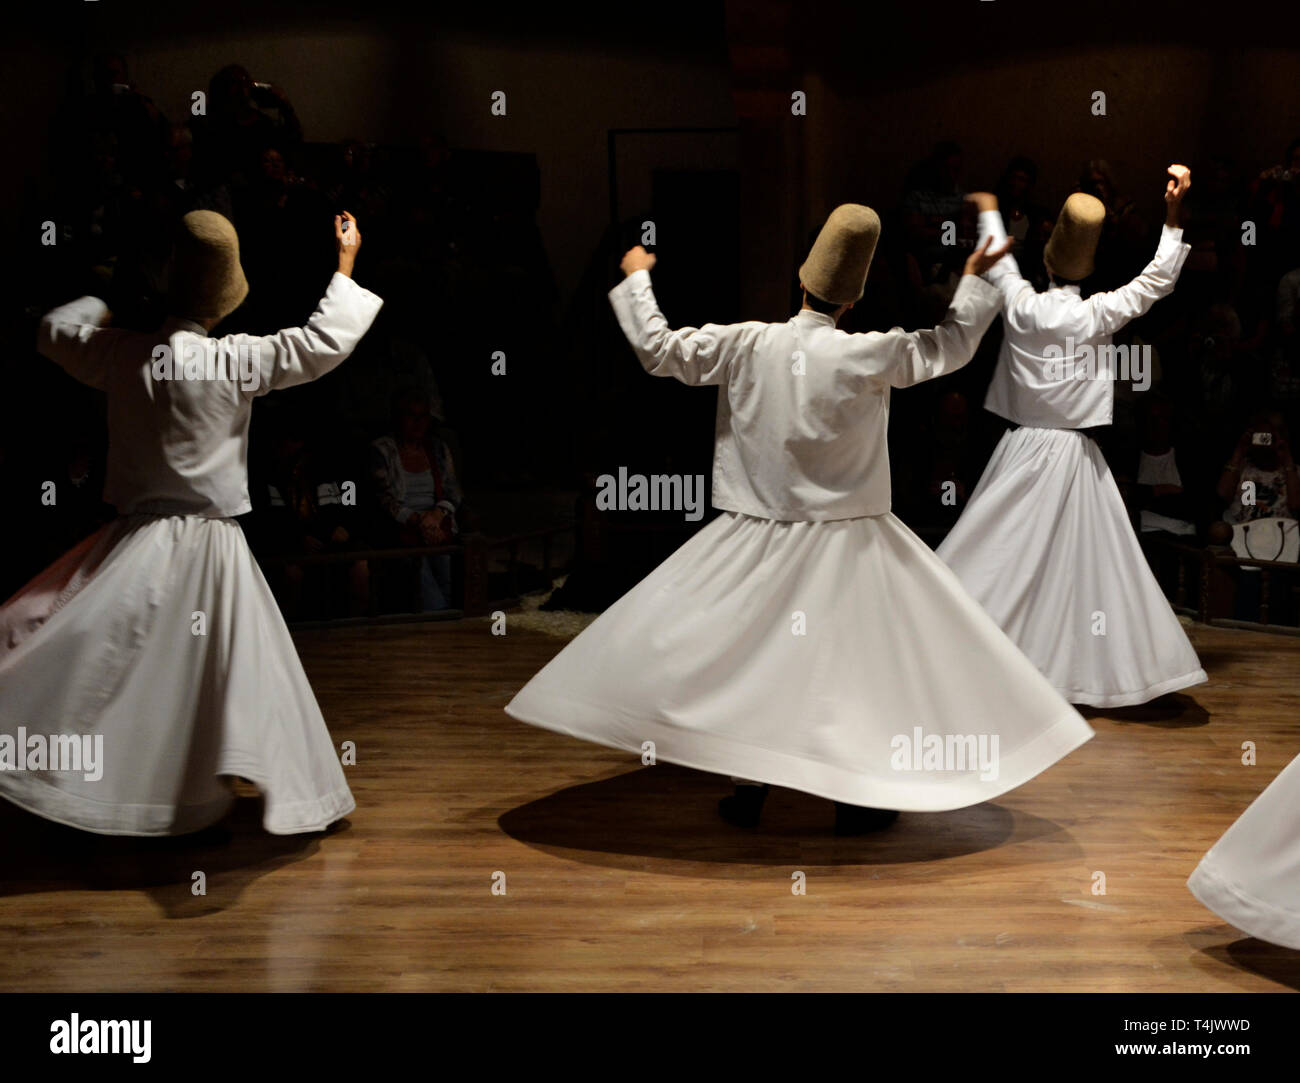 Whirling Dervishes show, sufi music, cappadocia, turkey - Stock Image